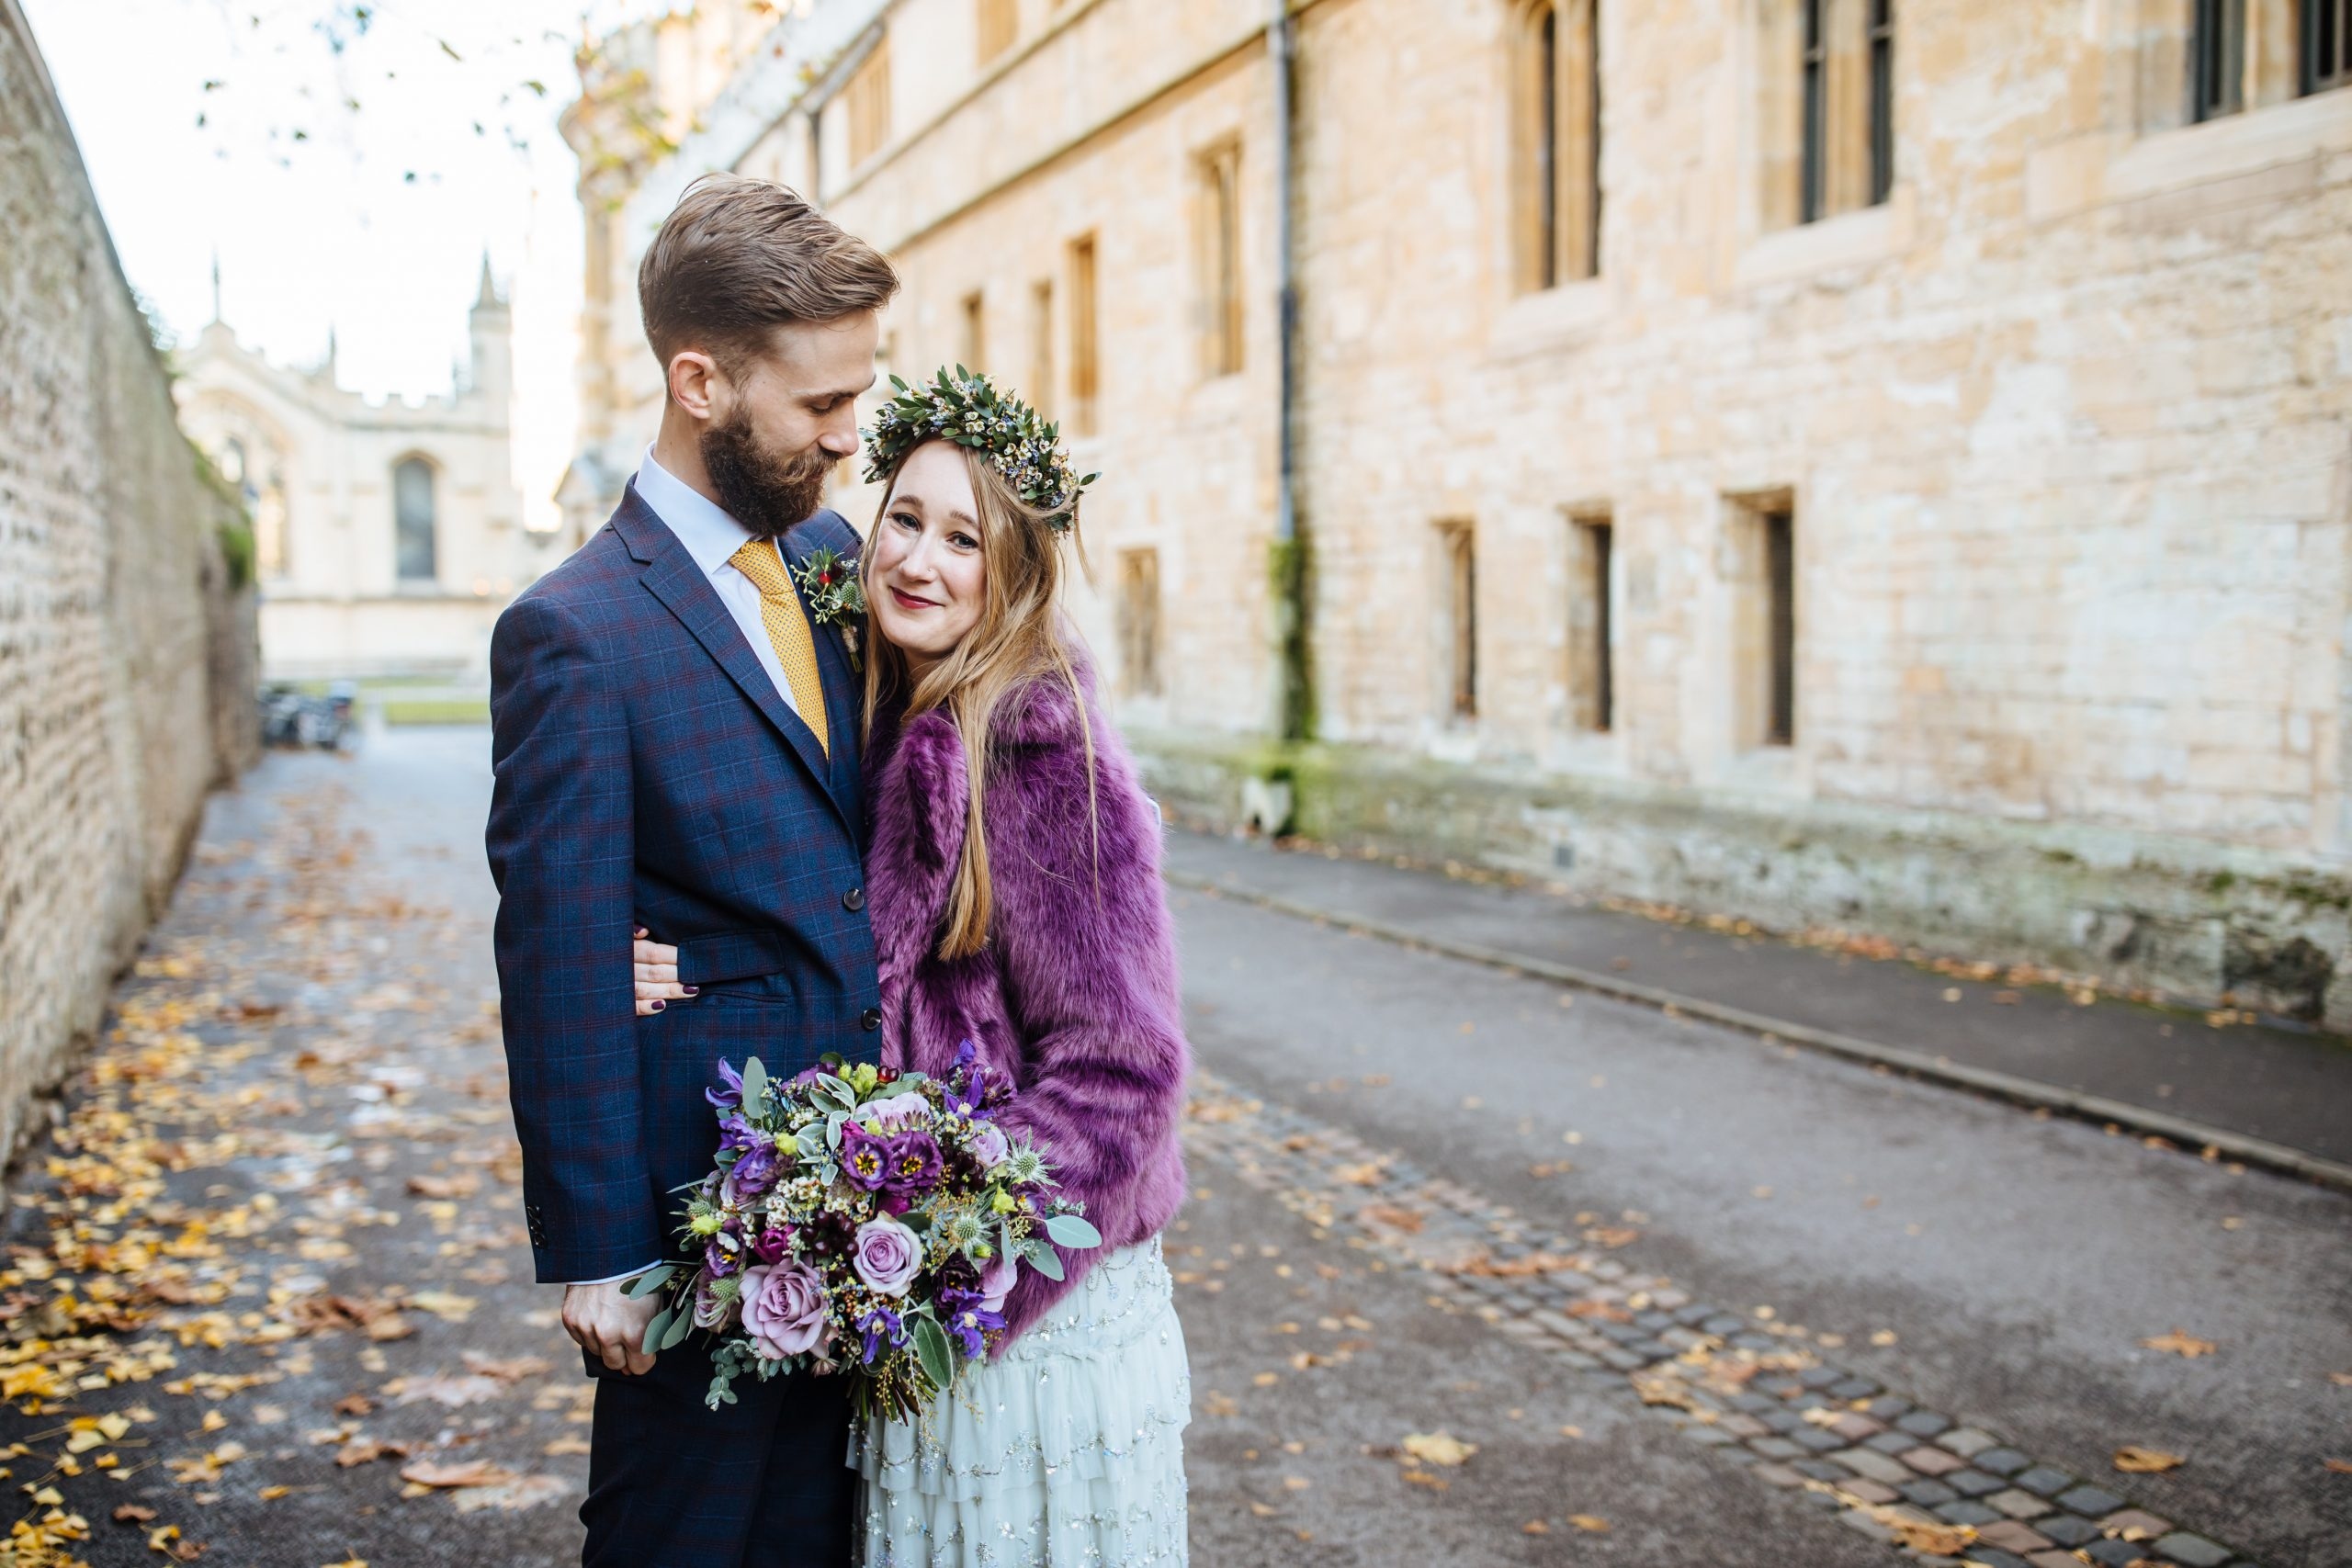 bride in needle and thread dress and purple coat hugging groom at Oxford wedding